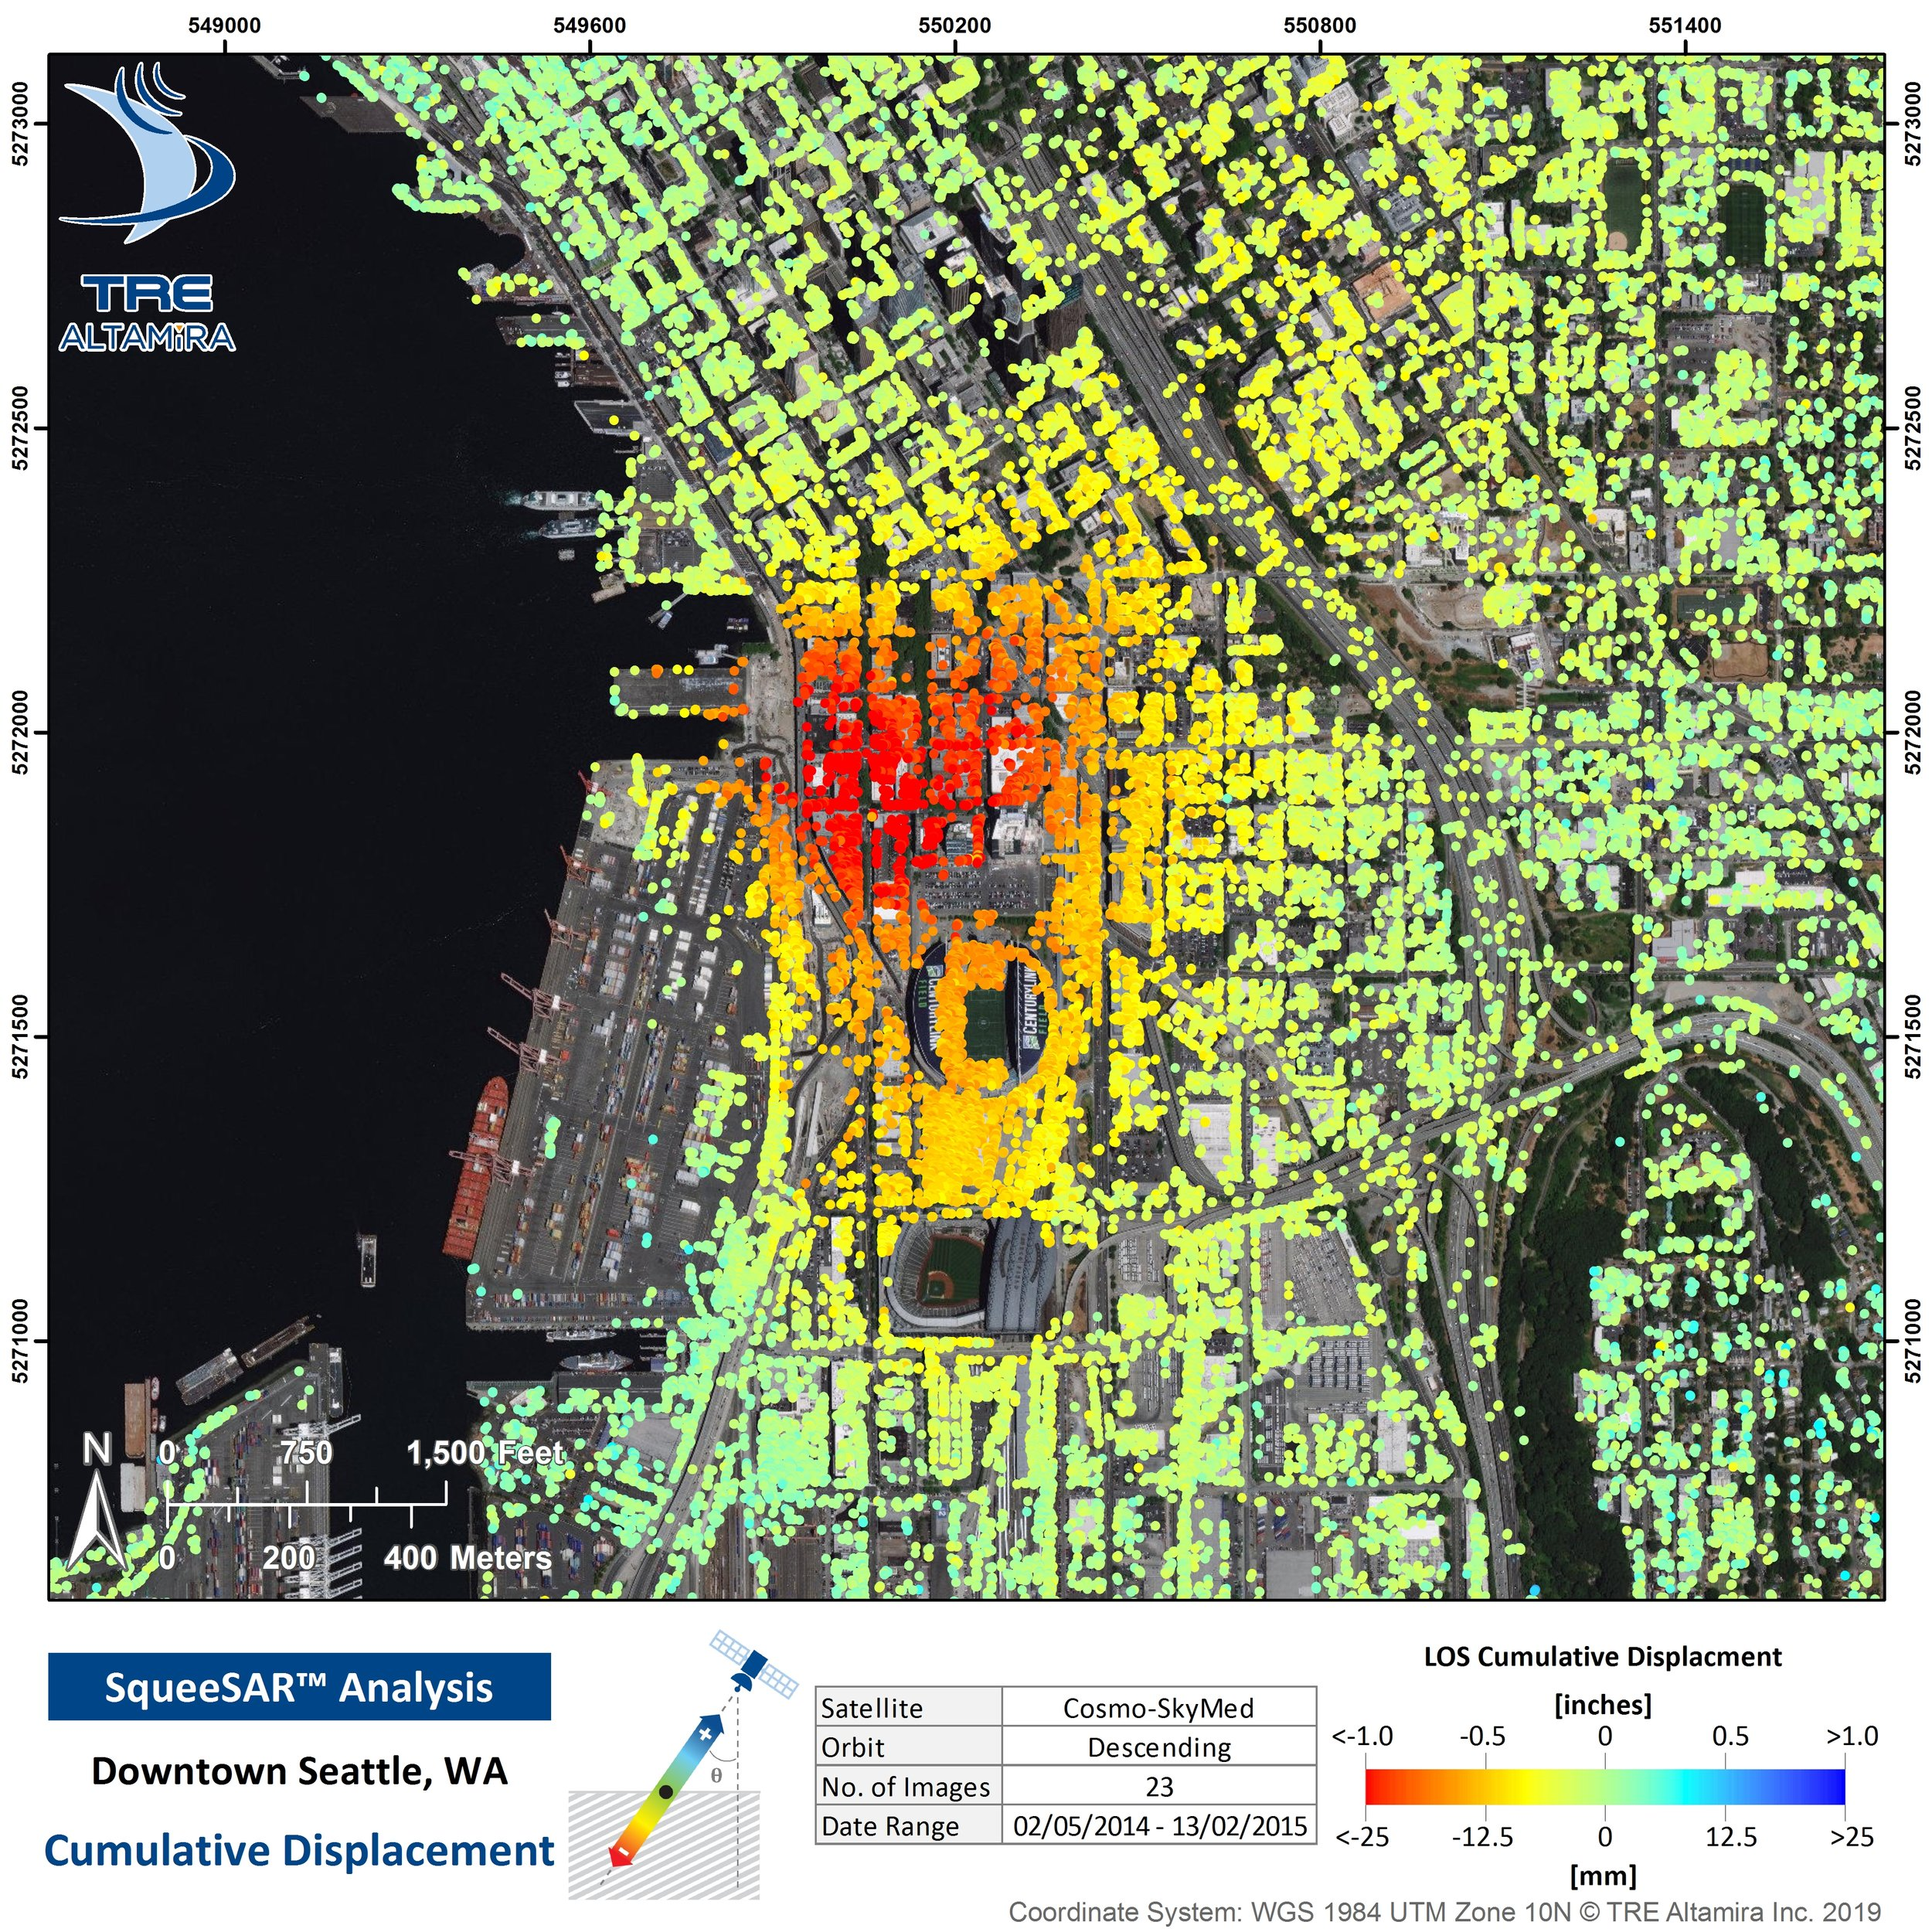 The aerial image of the Seattle waterfront shows locations of satellite radar altimetry points TRE Altamira used to measure precise changes in ground surface elevation from May 2014 through February 2015, which included the period of Bertha rescue shaft dewatering. The colors of the dots represent the cumulative change in elevation, with hot colors showing subsidence and cool showing uplift. The orange and red areas show the broad pattern of ground subsidence associated with the shaft dewatering. For more information on this technology, visit    TRE Altamira   .